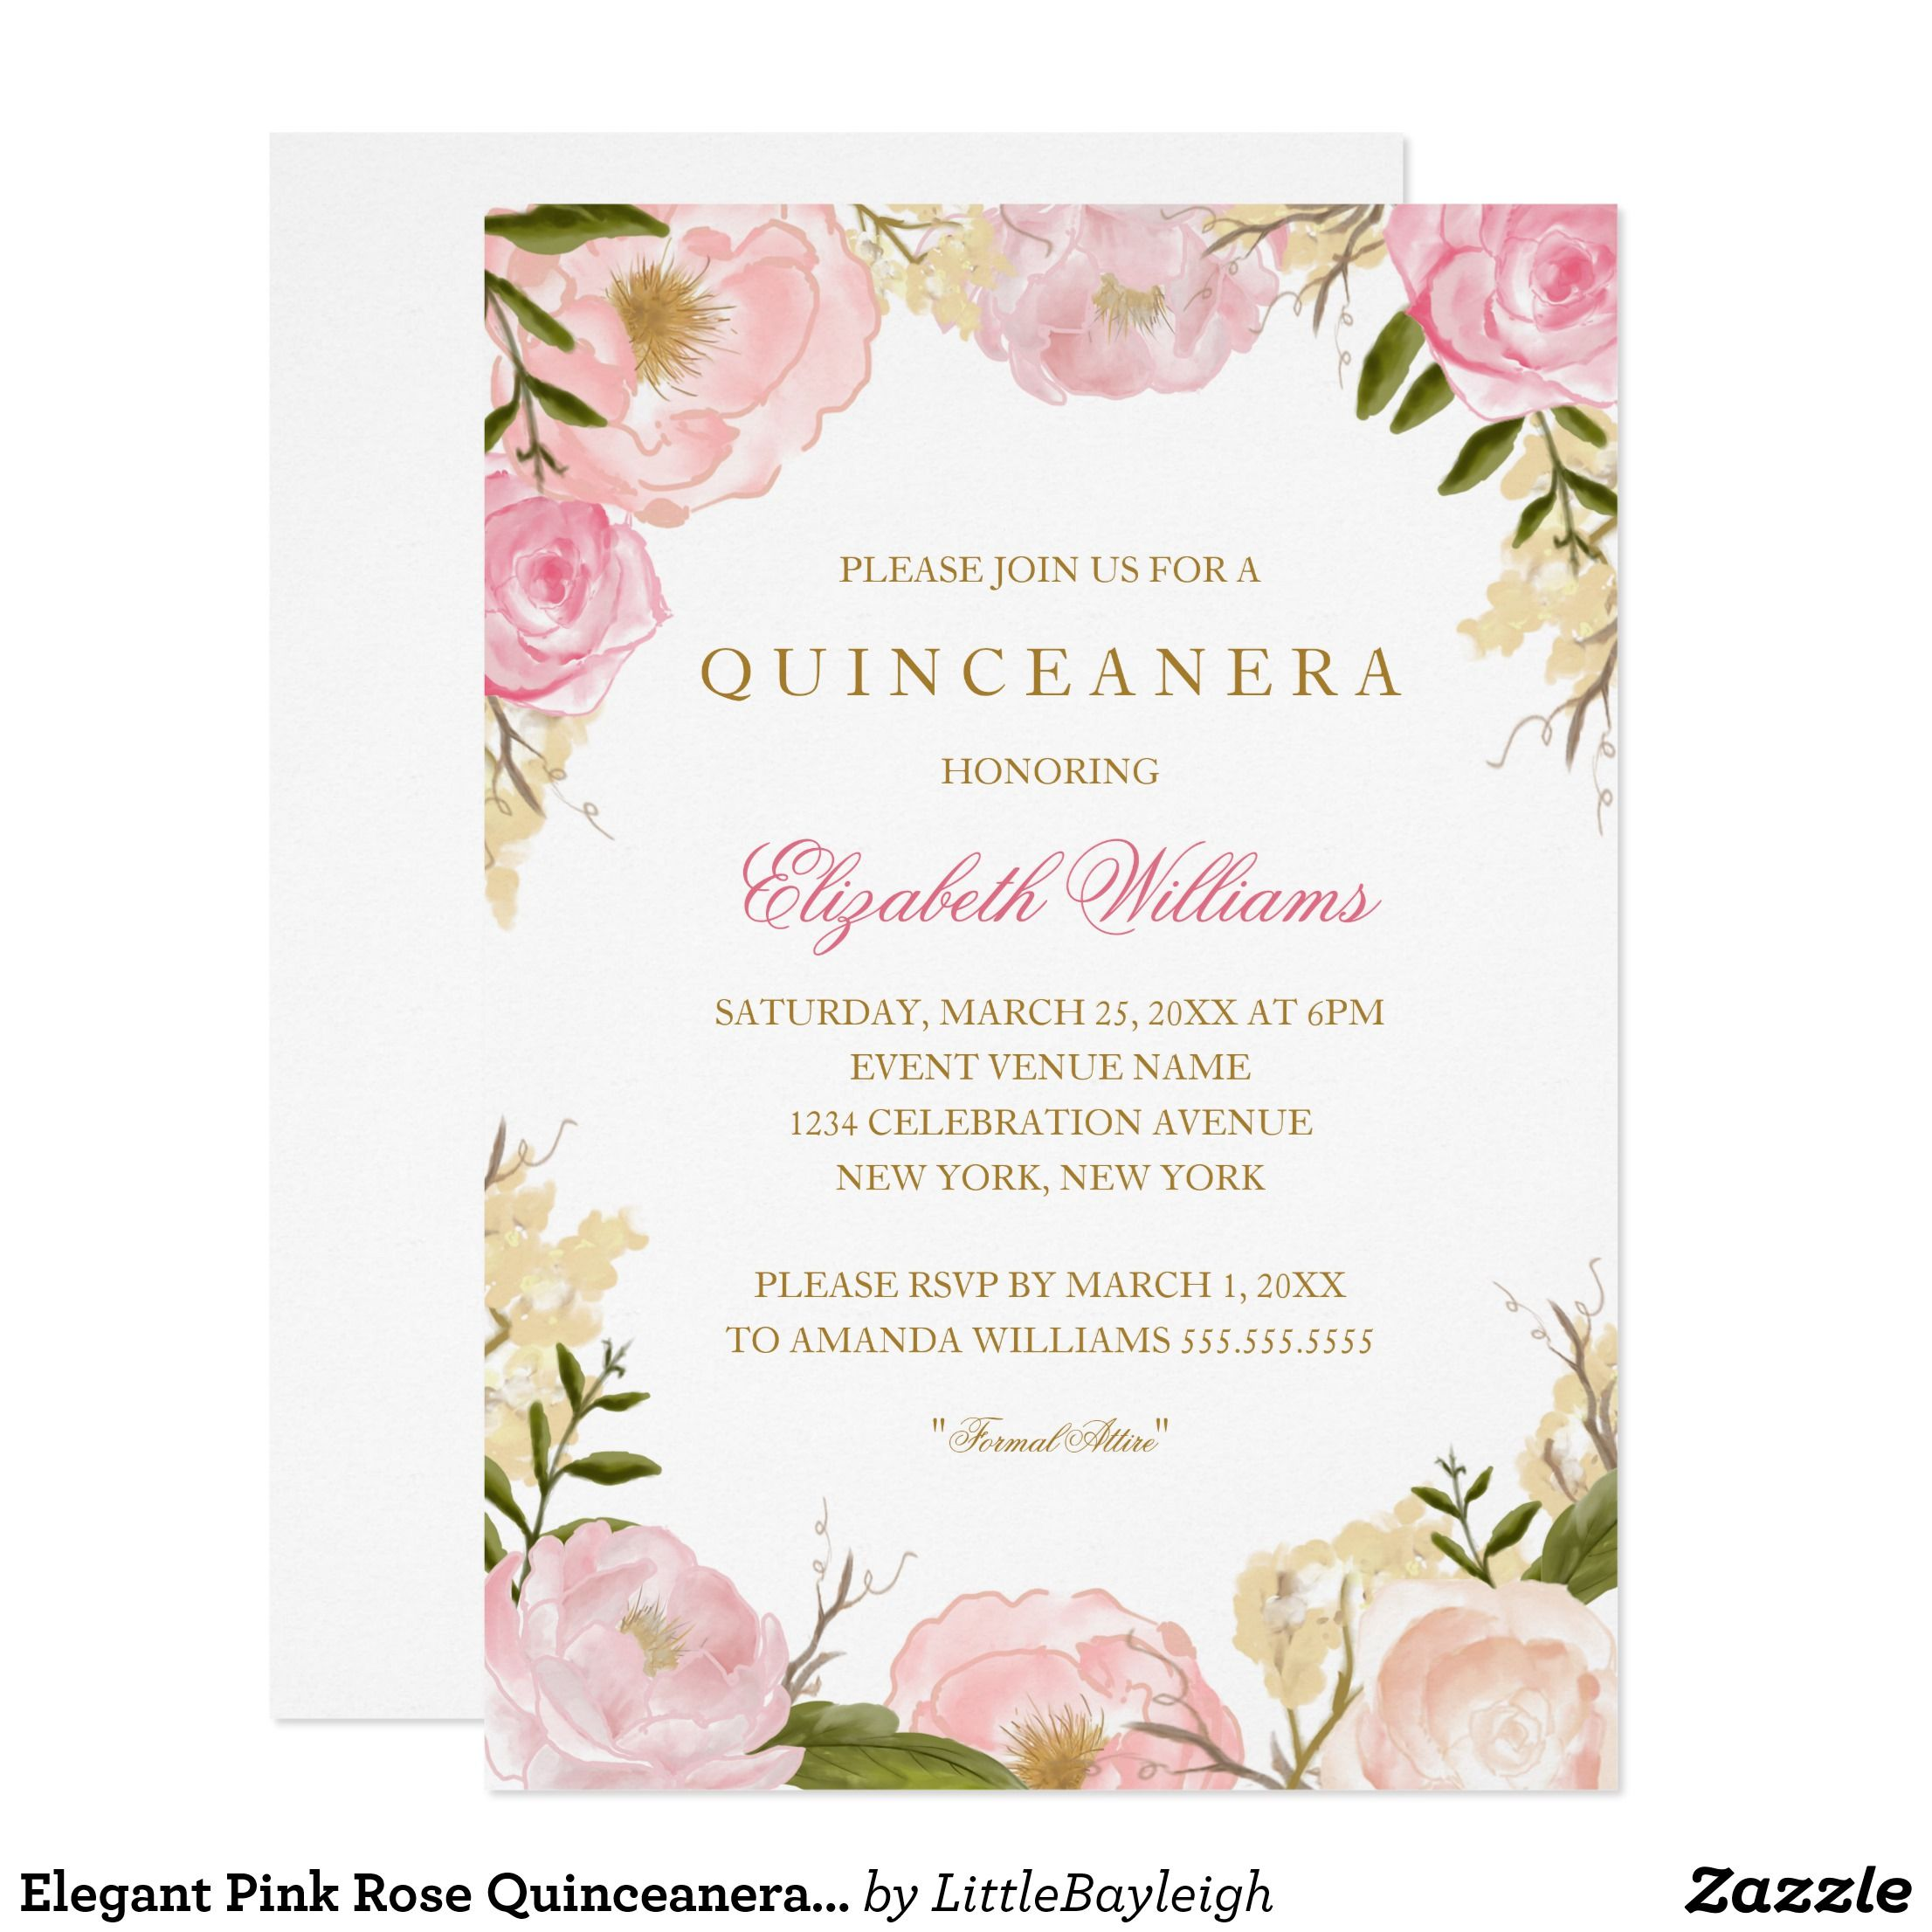 Elegant Pink Rose Quinceanera Invitation | Pinterest | Quinceanera ...